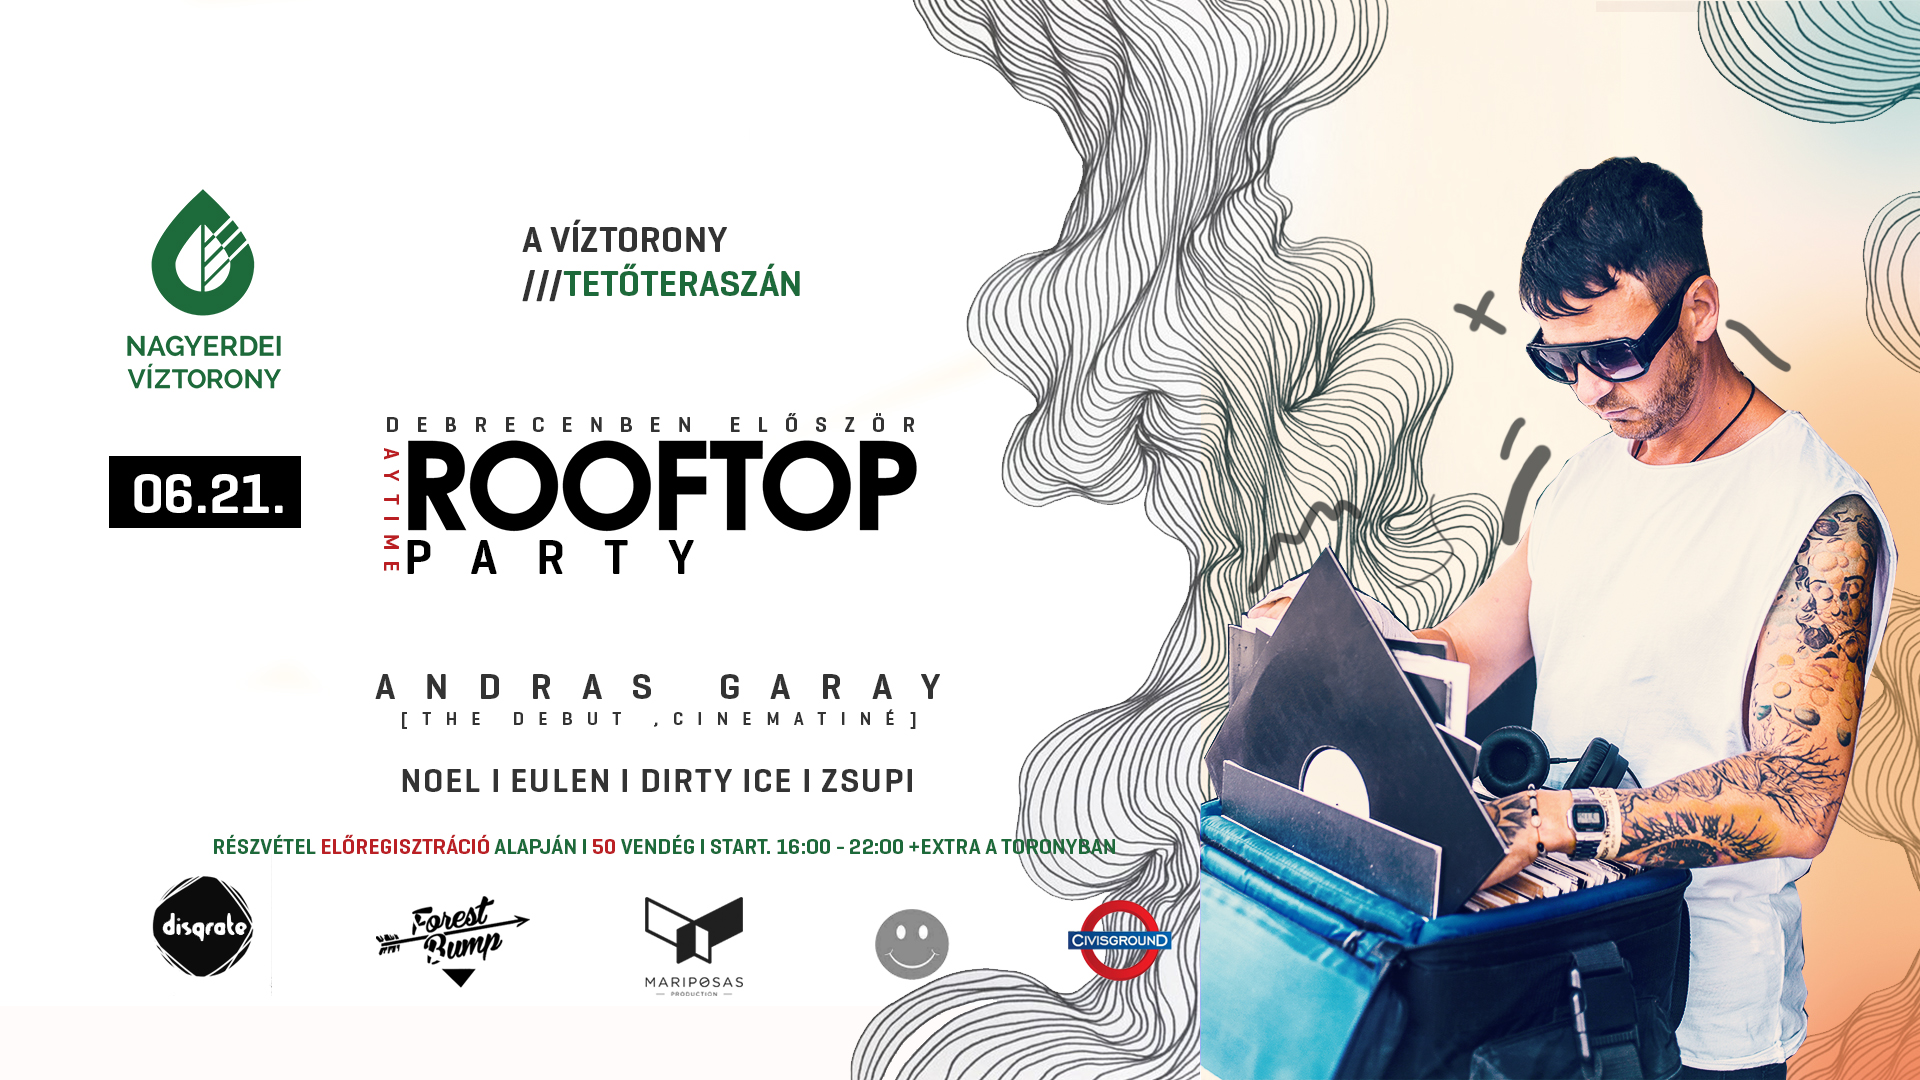 06/21 Rooftop party w Andras Garay